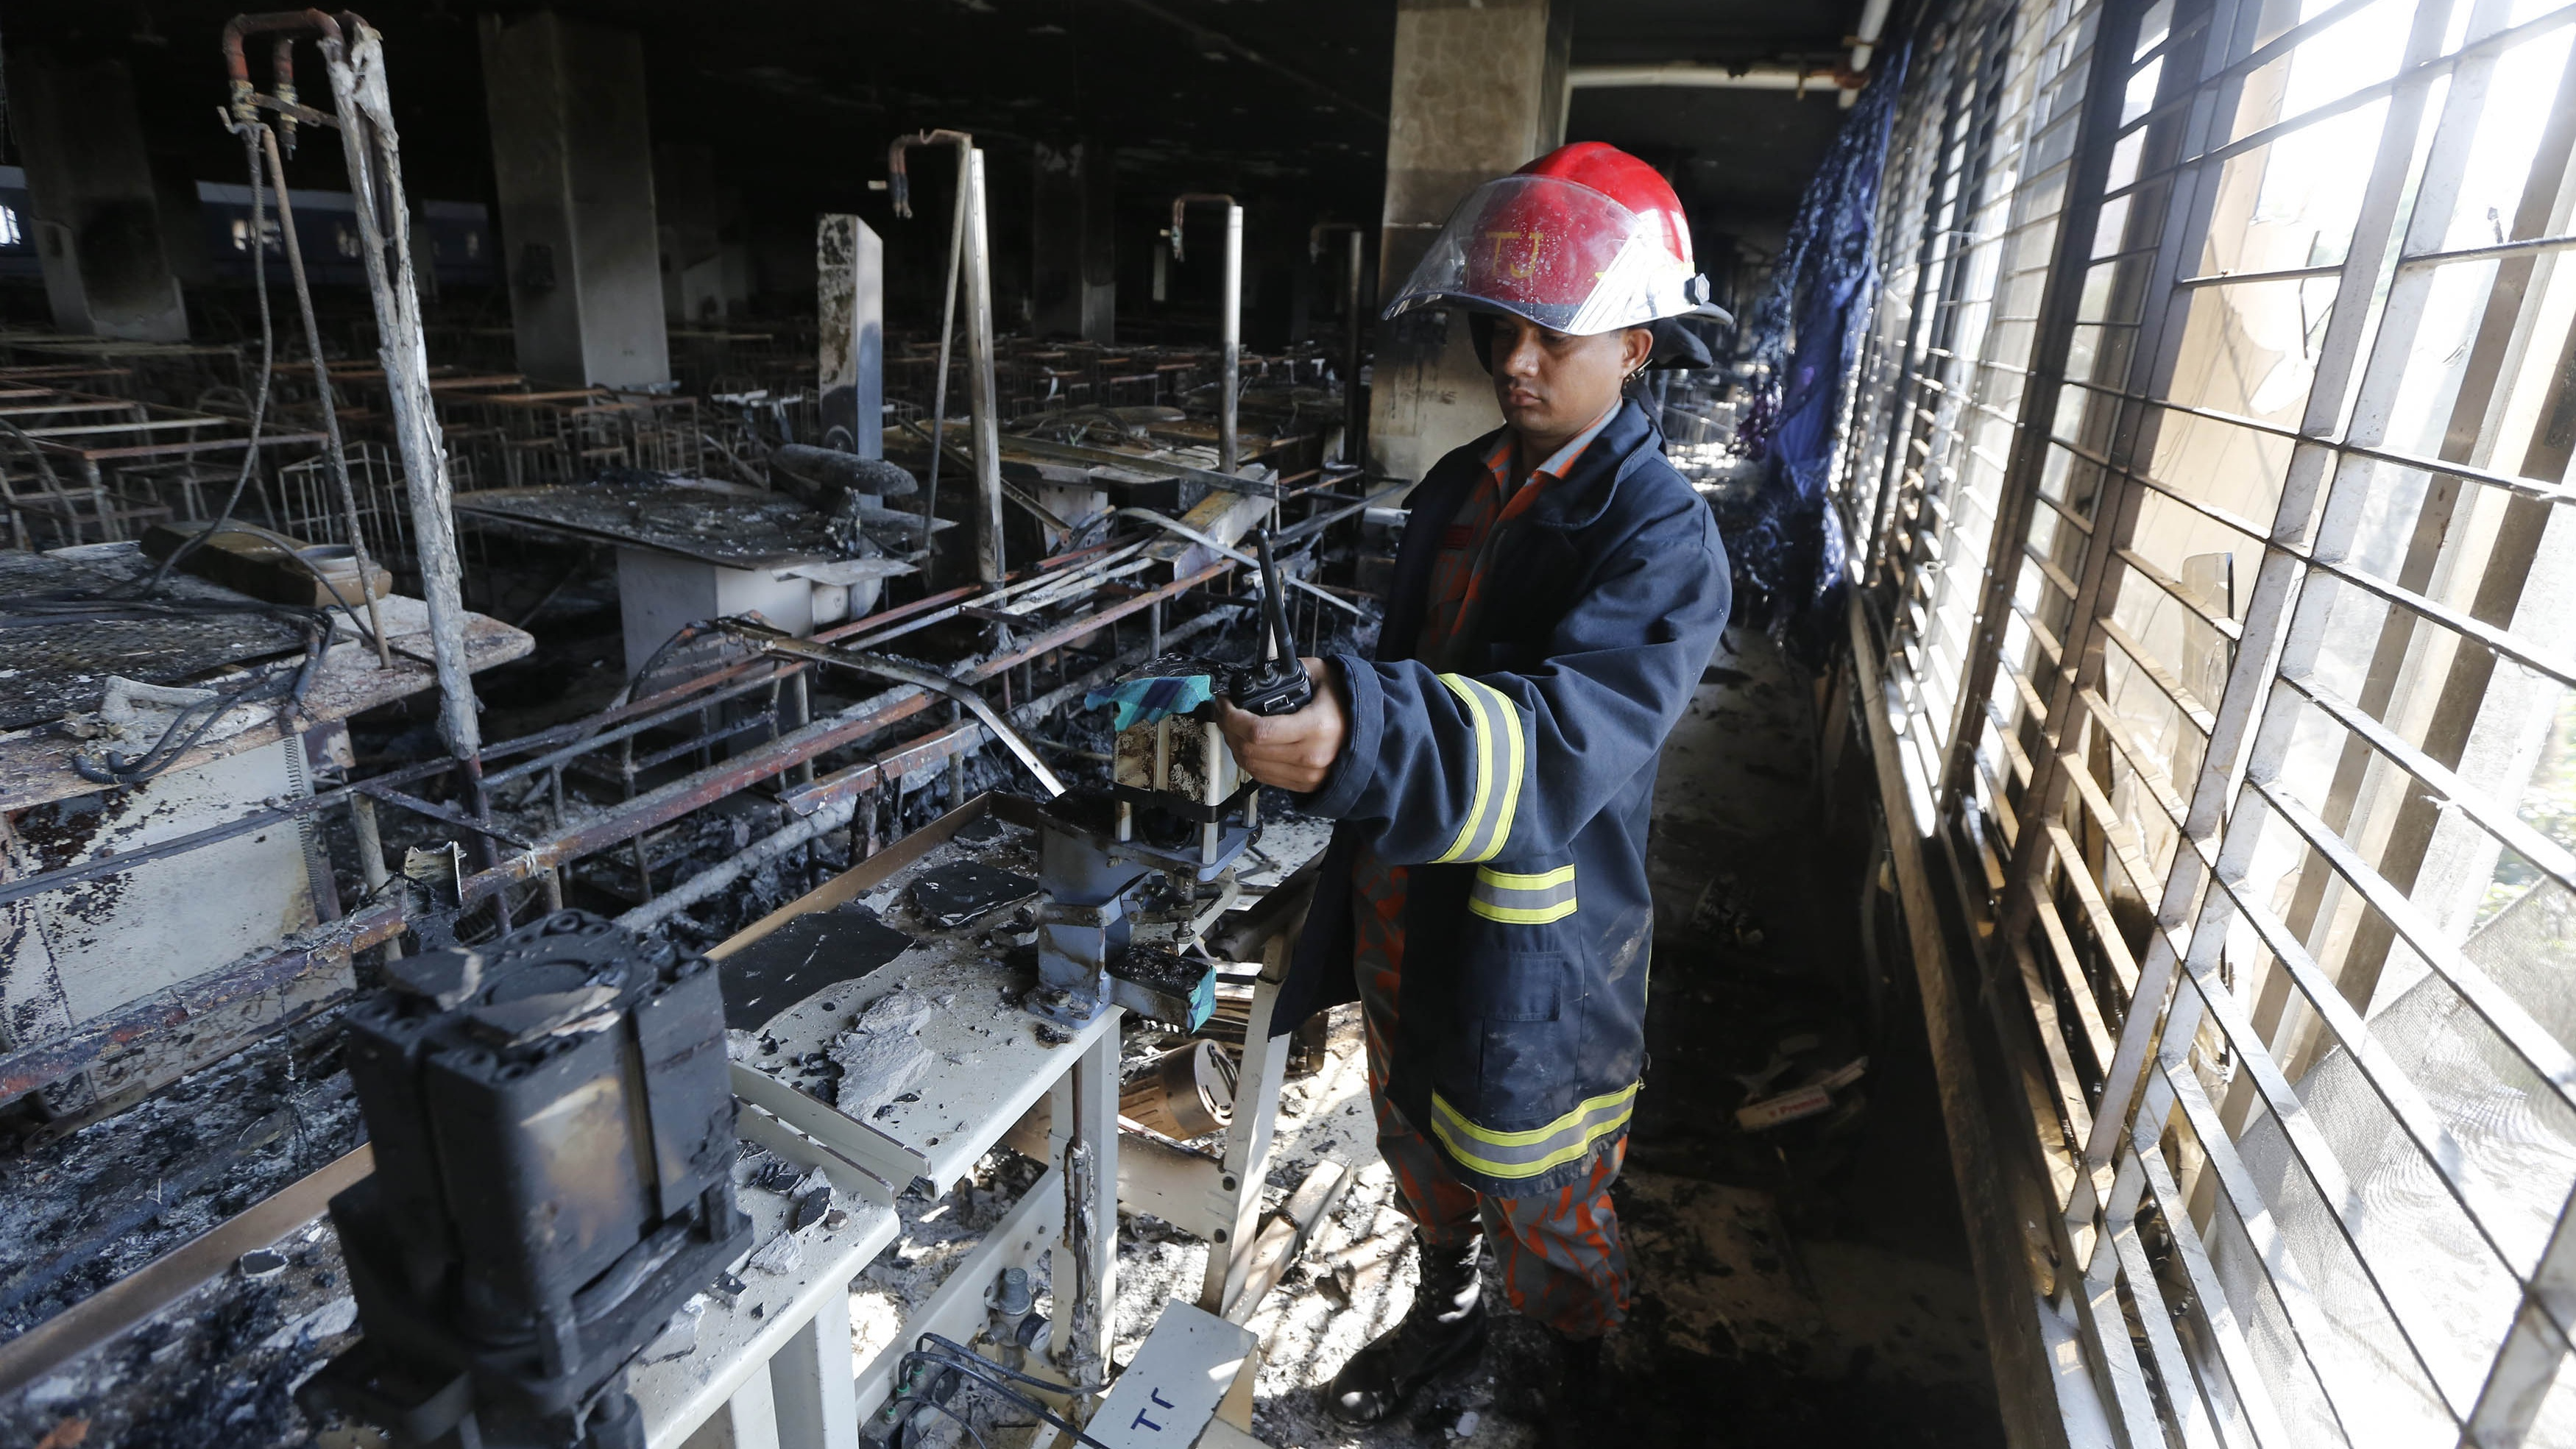 A firefighter inspects the Standard Group garment factory which was on fire in Gazipur November 29, 2013. A huge fire on Friday destroyed the Bangladesh garment factory supplying key Western brands, authorities said, in a blaze touched off by workers angered over rumours of a colleague's death in police firing. There were no initial reports of casualties in the fire.